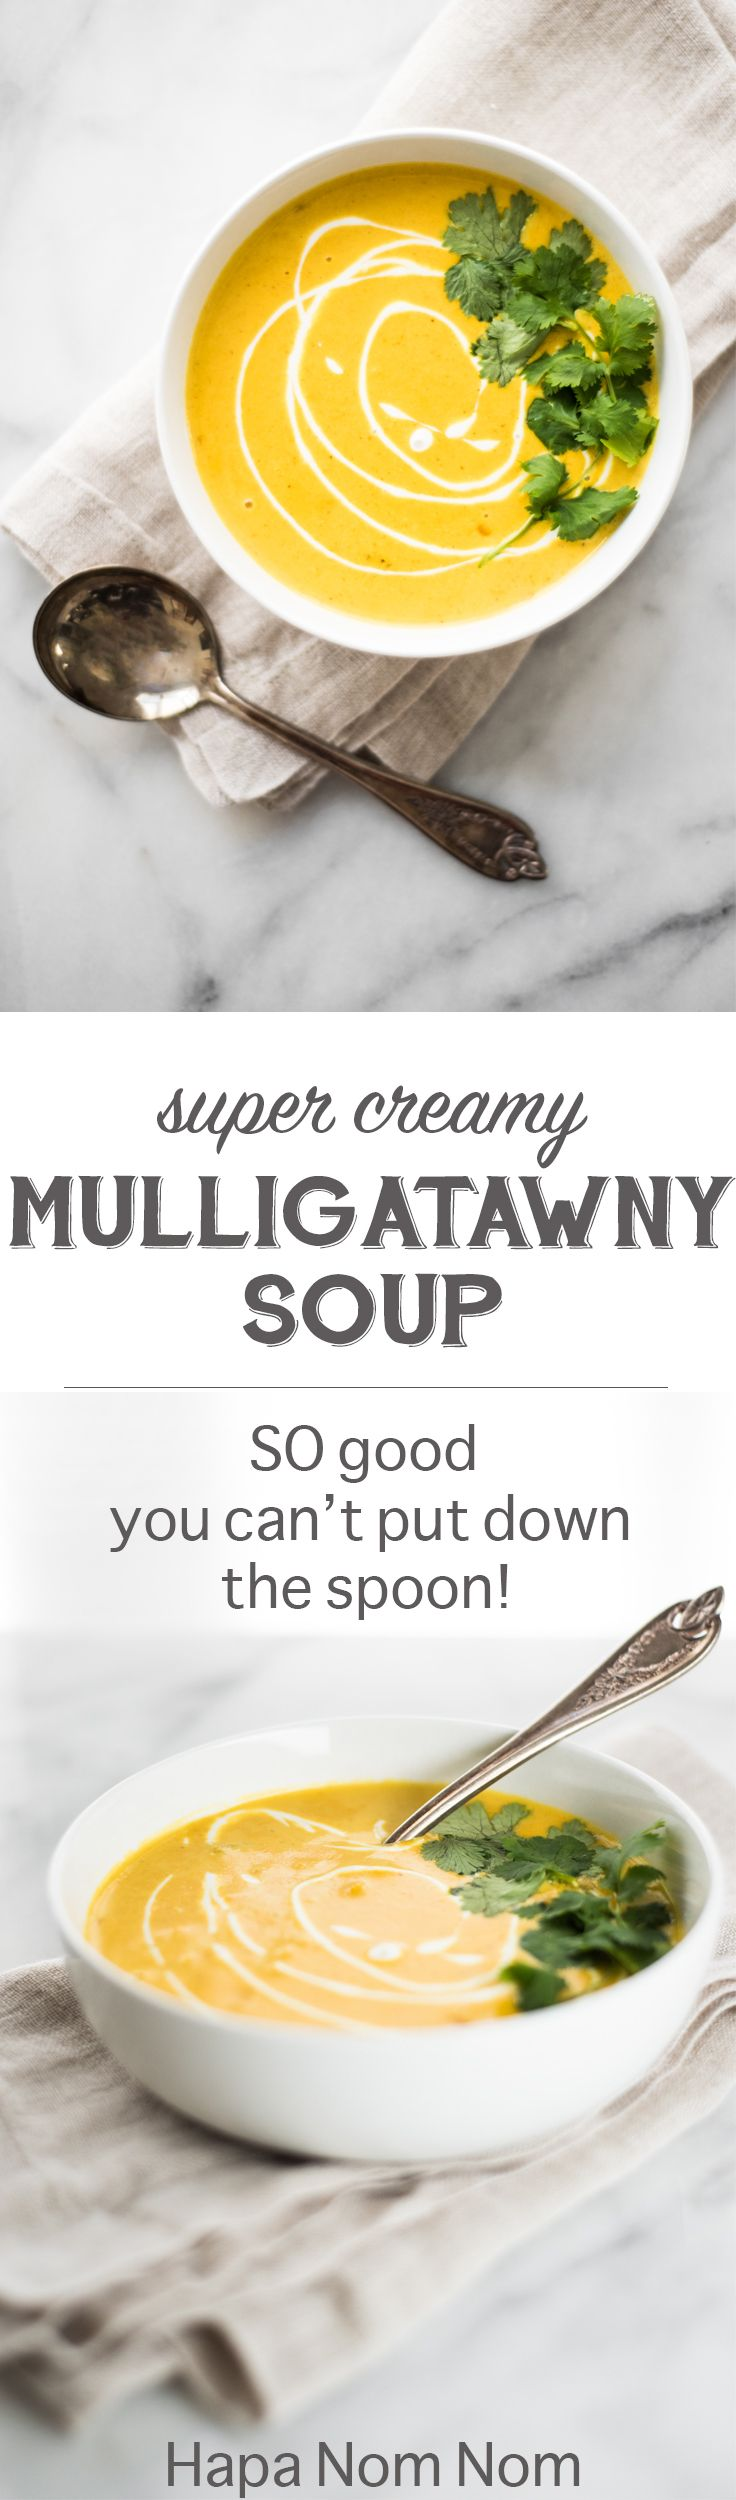 This Super Creamy Mulligatawny Soup is going to ROCK your world! It's so rich, so creamy, so good, that I was literally spooning molten hot soup into my mouth before it even had time to cool down!